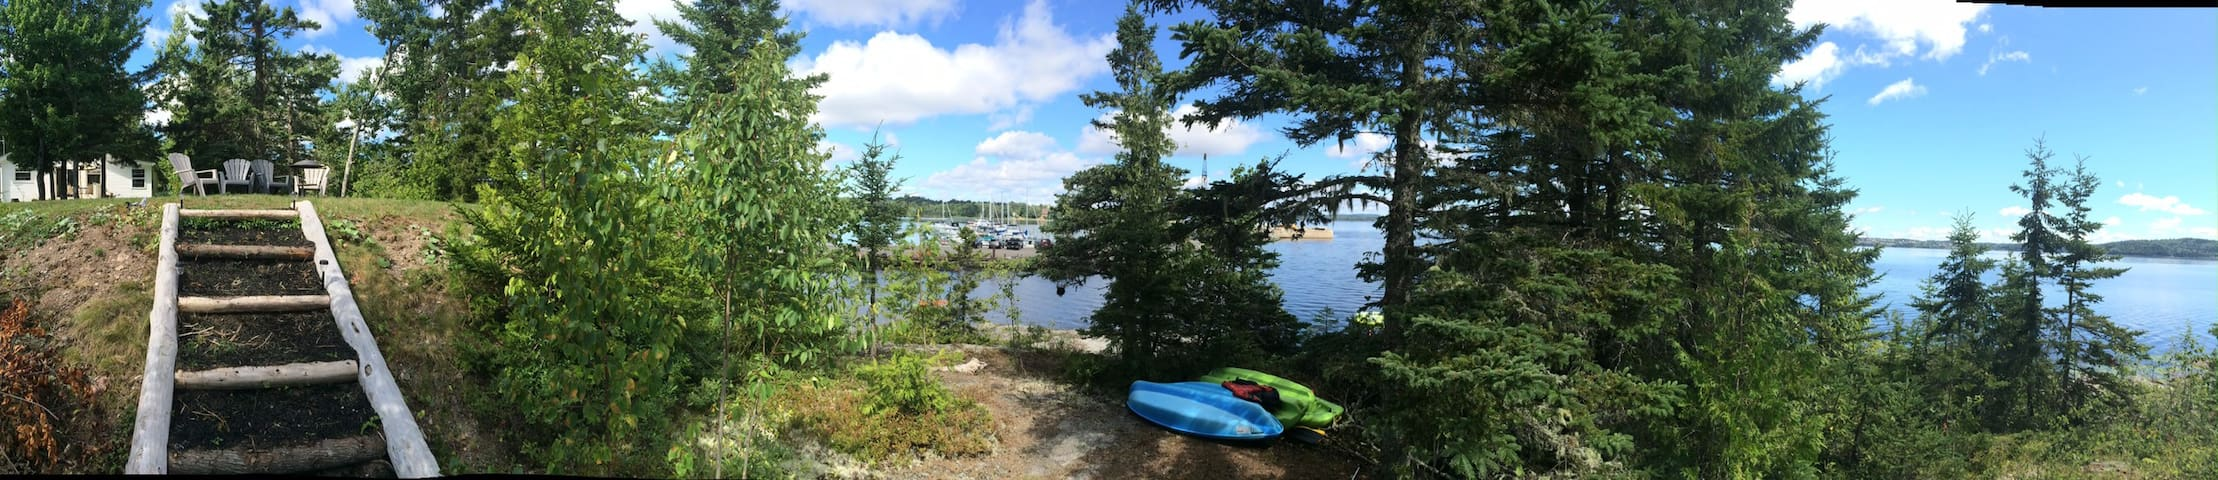 SaintJohn river cottage  Welcome to Windwood Point